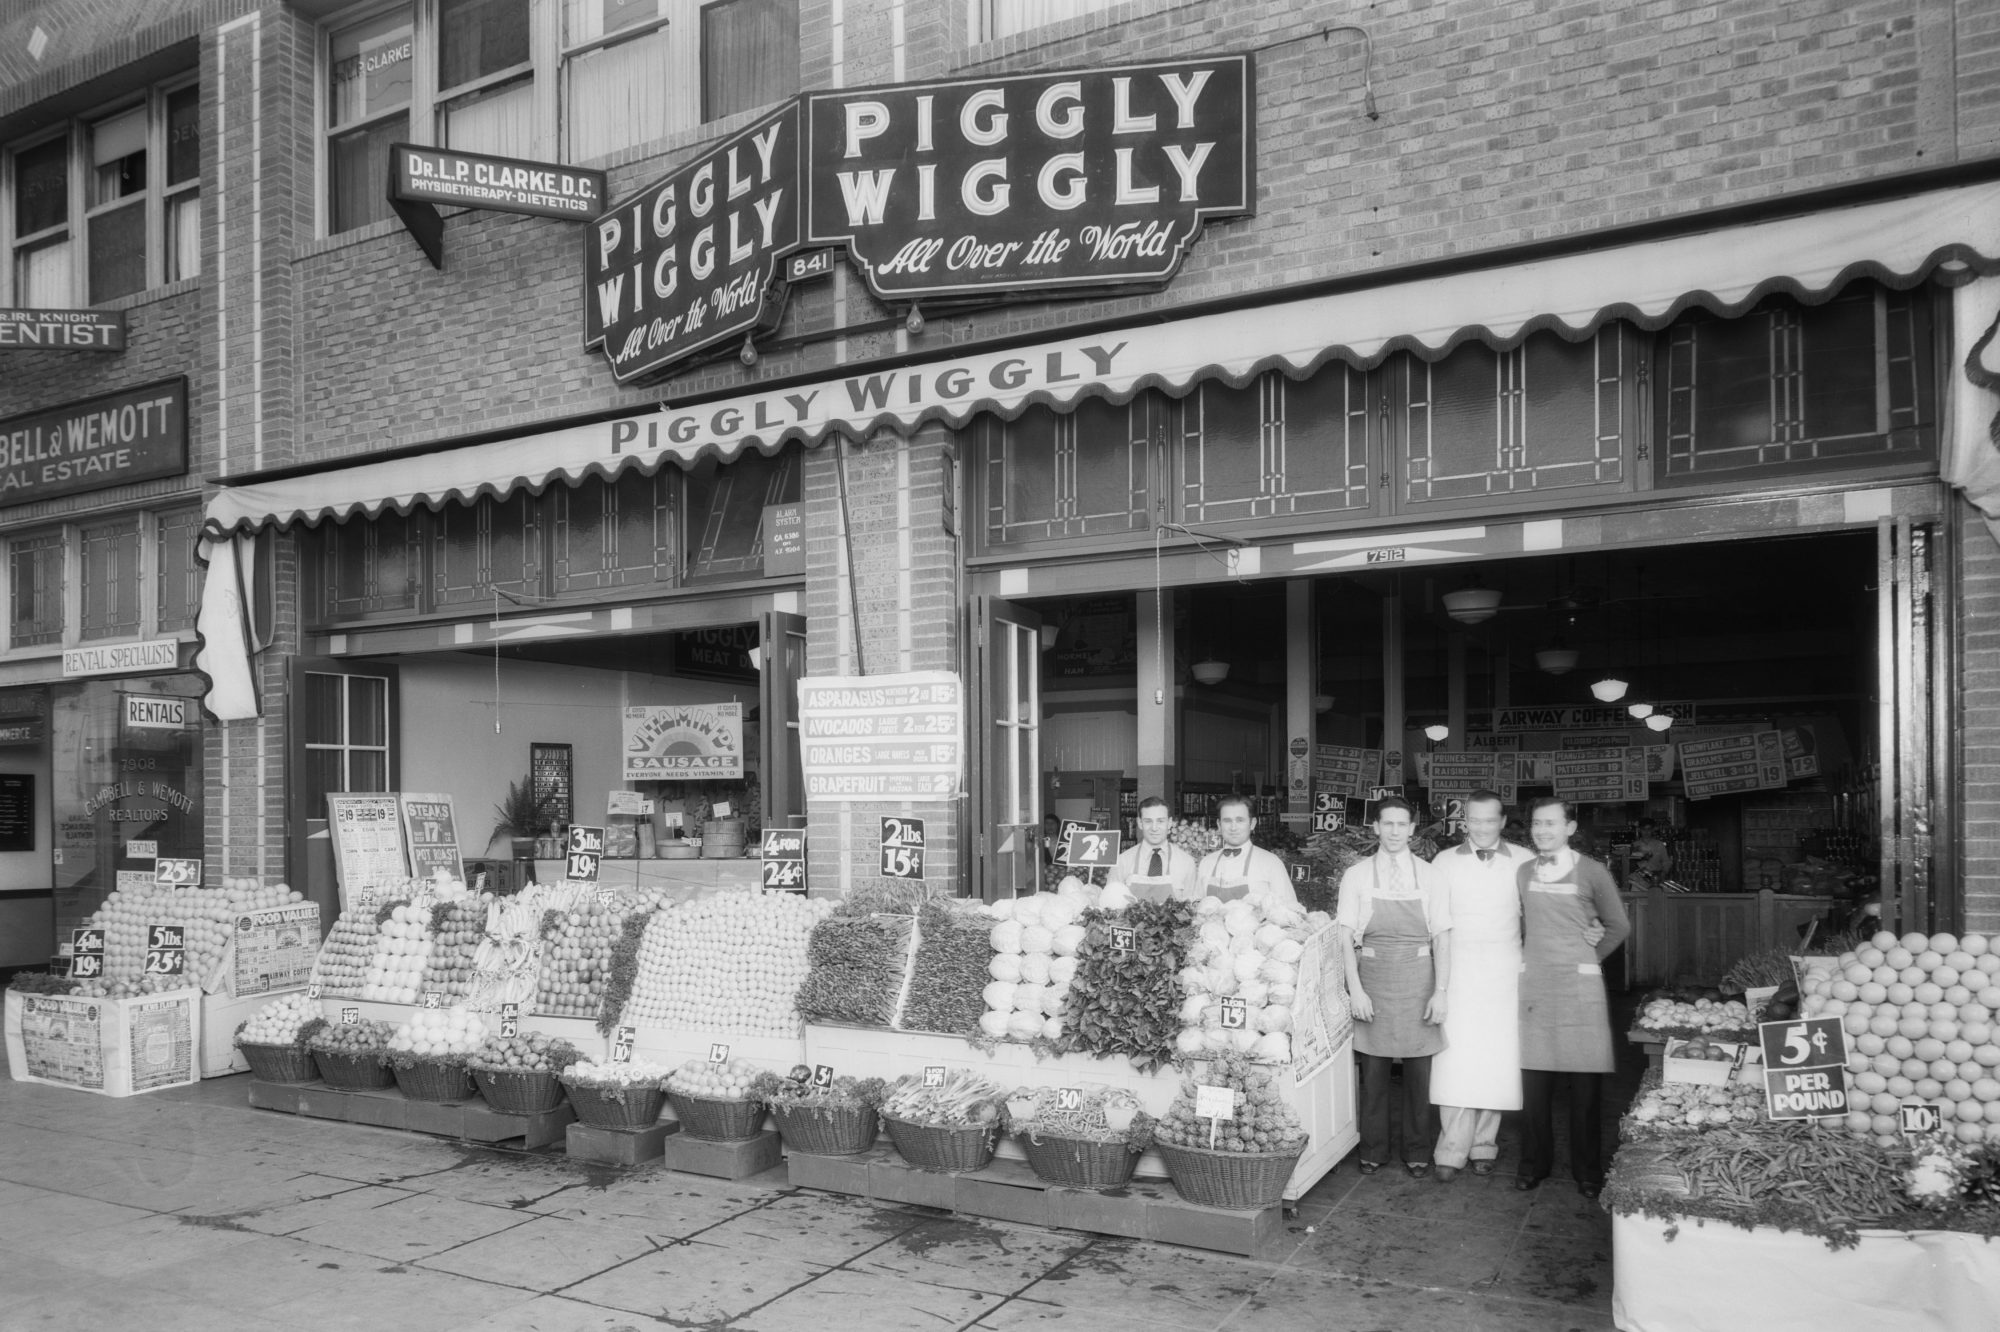 Piggly Wiggly Storefront in 1934